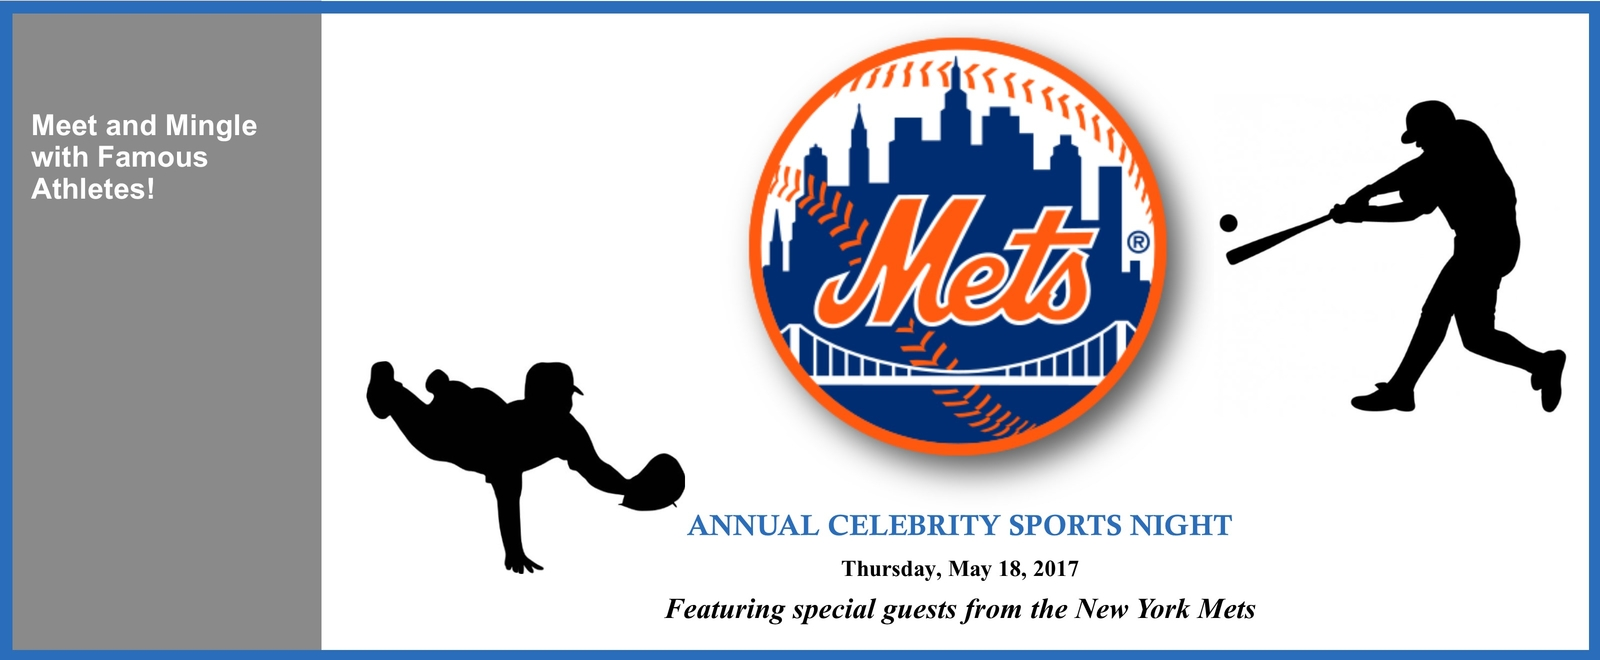 Annual Celebrity Sports Night, May 18, 2017. Featuring guests from the NY Mets.